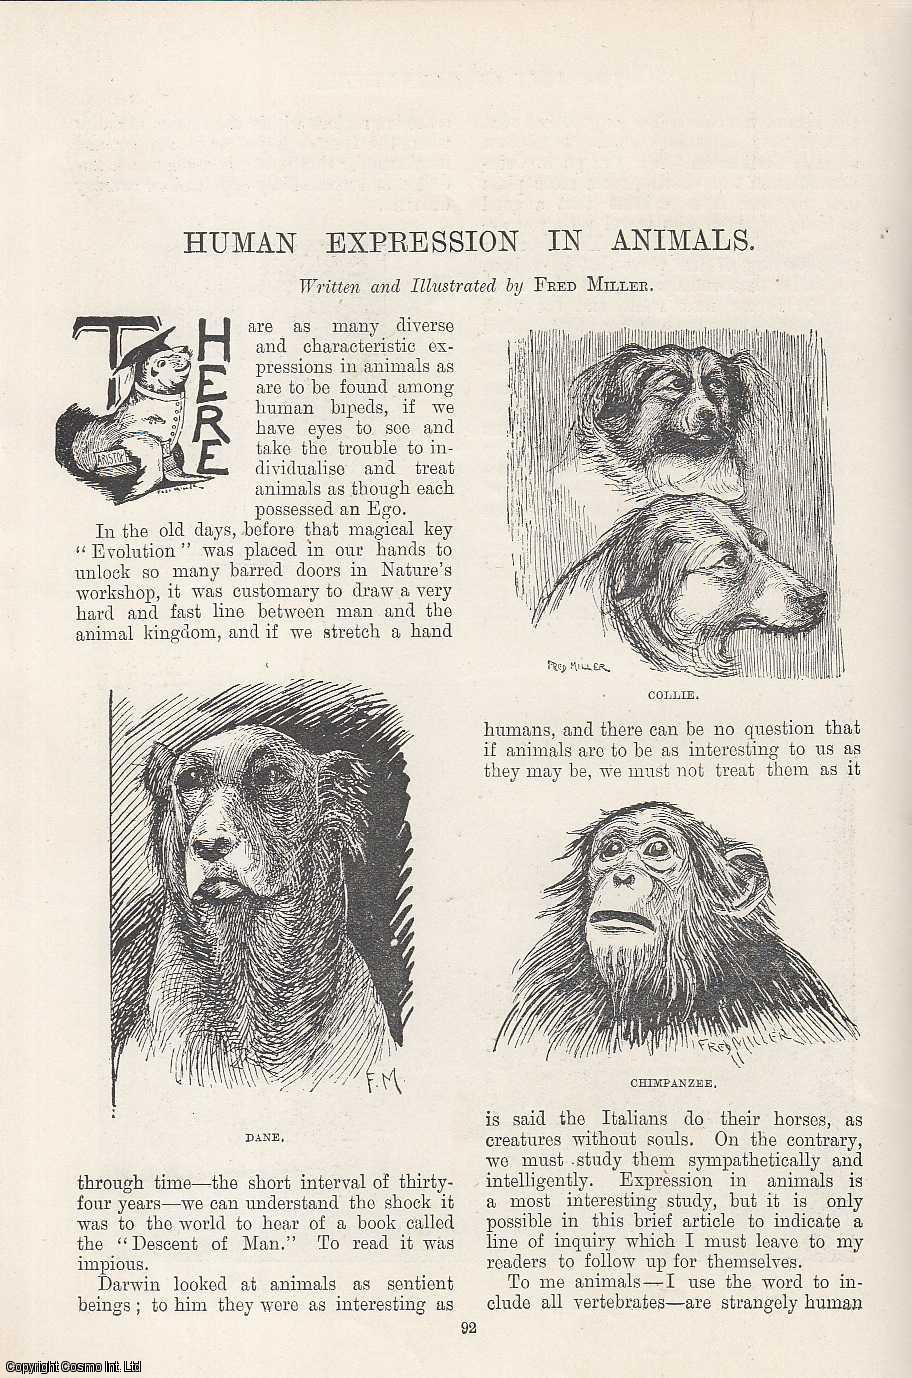 MILLER, FRED - Human Expression in Animals. Illustrated by Fred Miller. An original article from the Windsor Magazine, 1895.